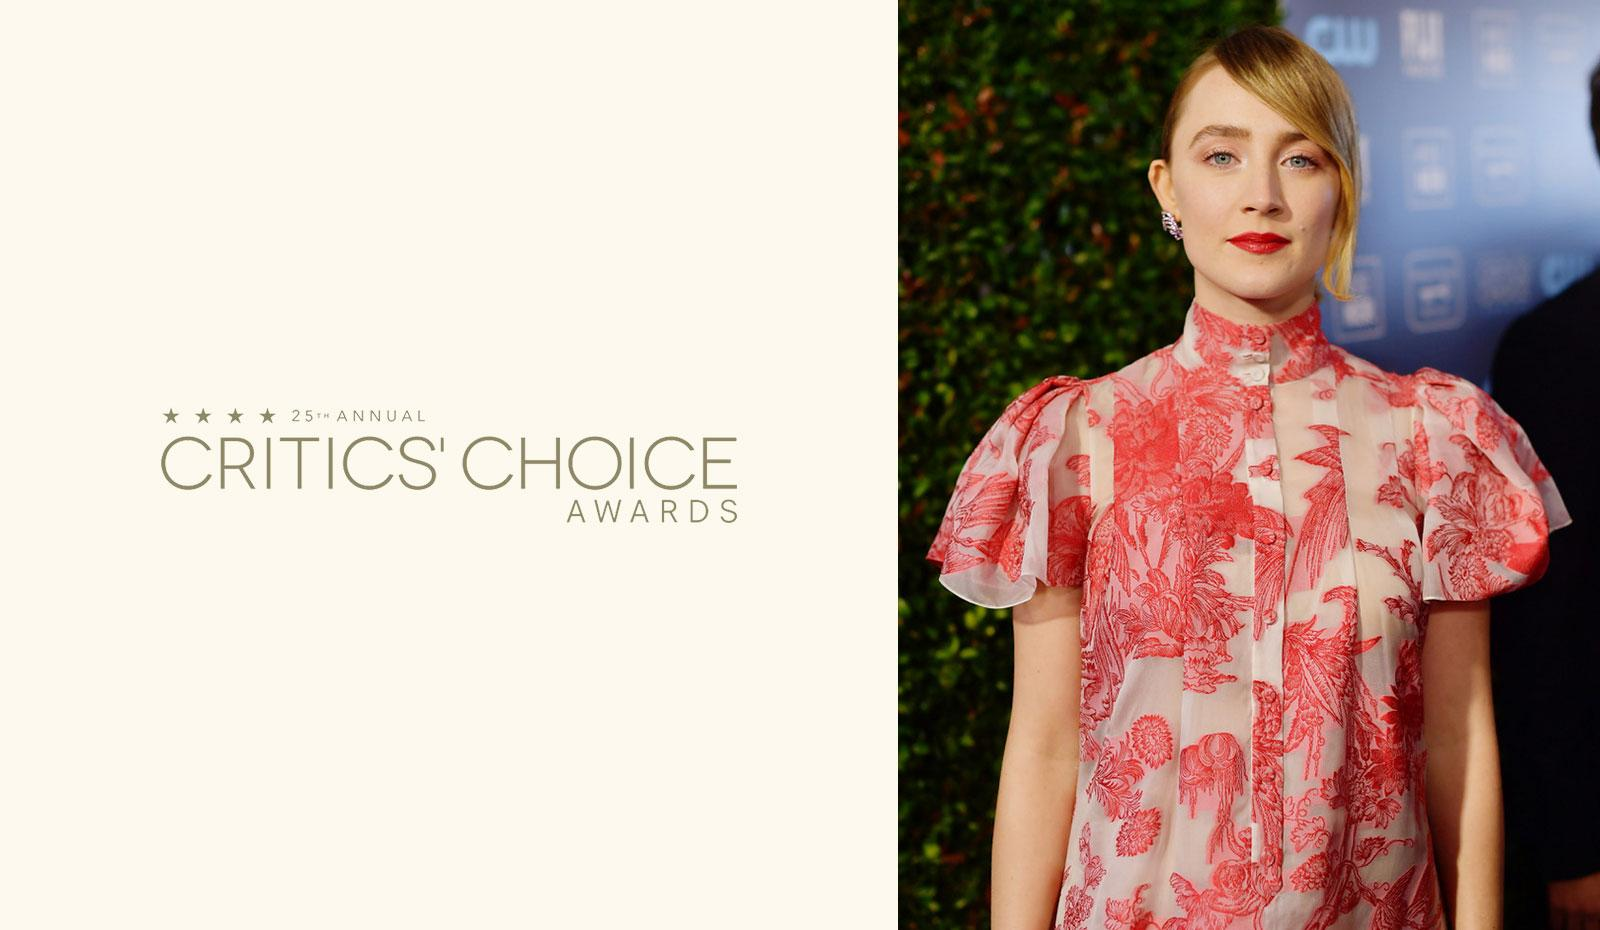 2020 Critic's Choice Awards: Saoirse Ronan's Romantic Low Ponytail